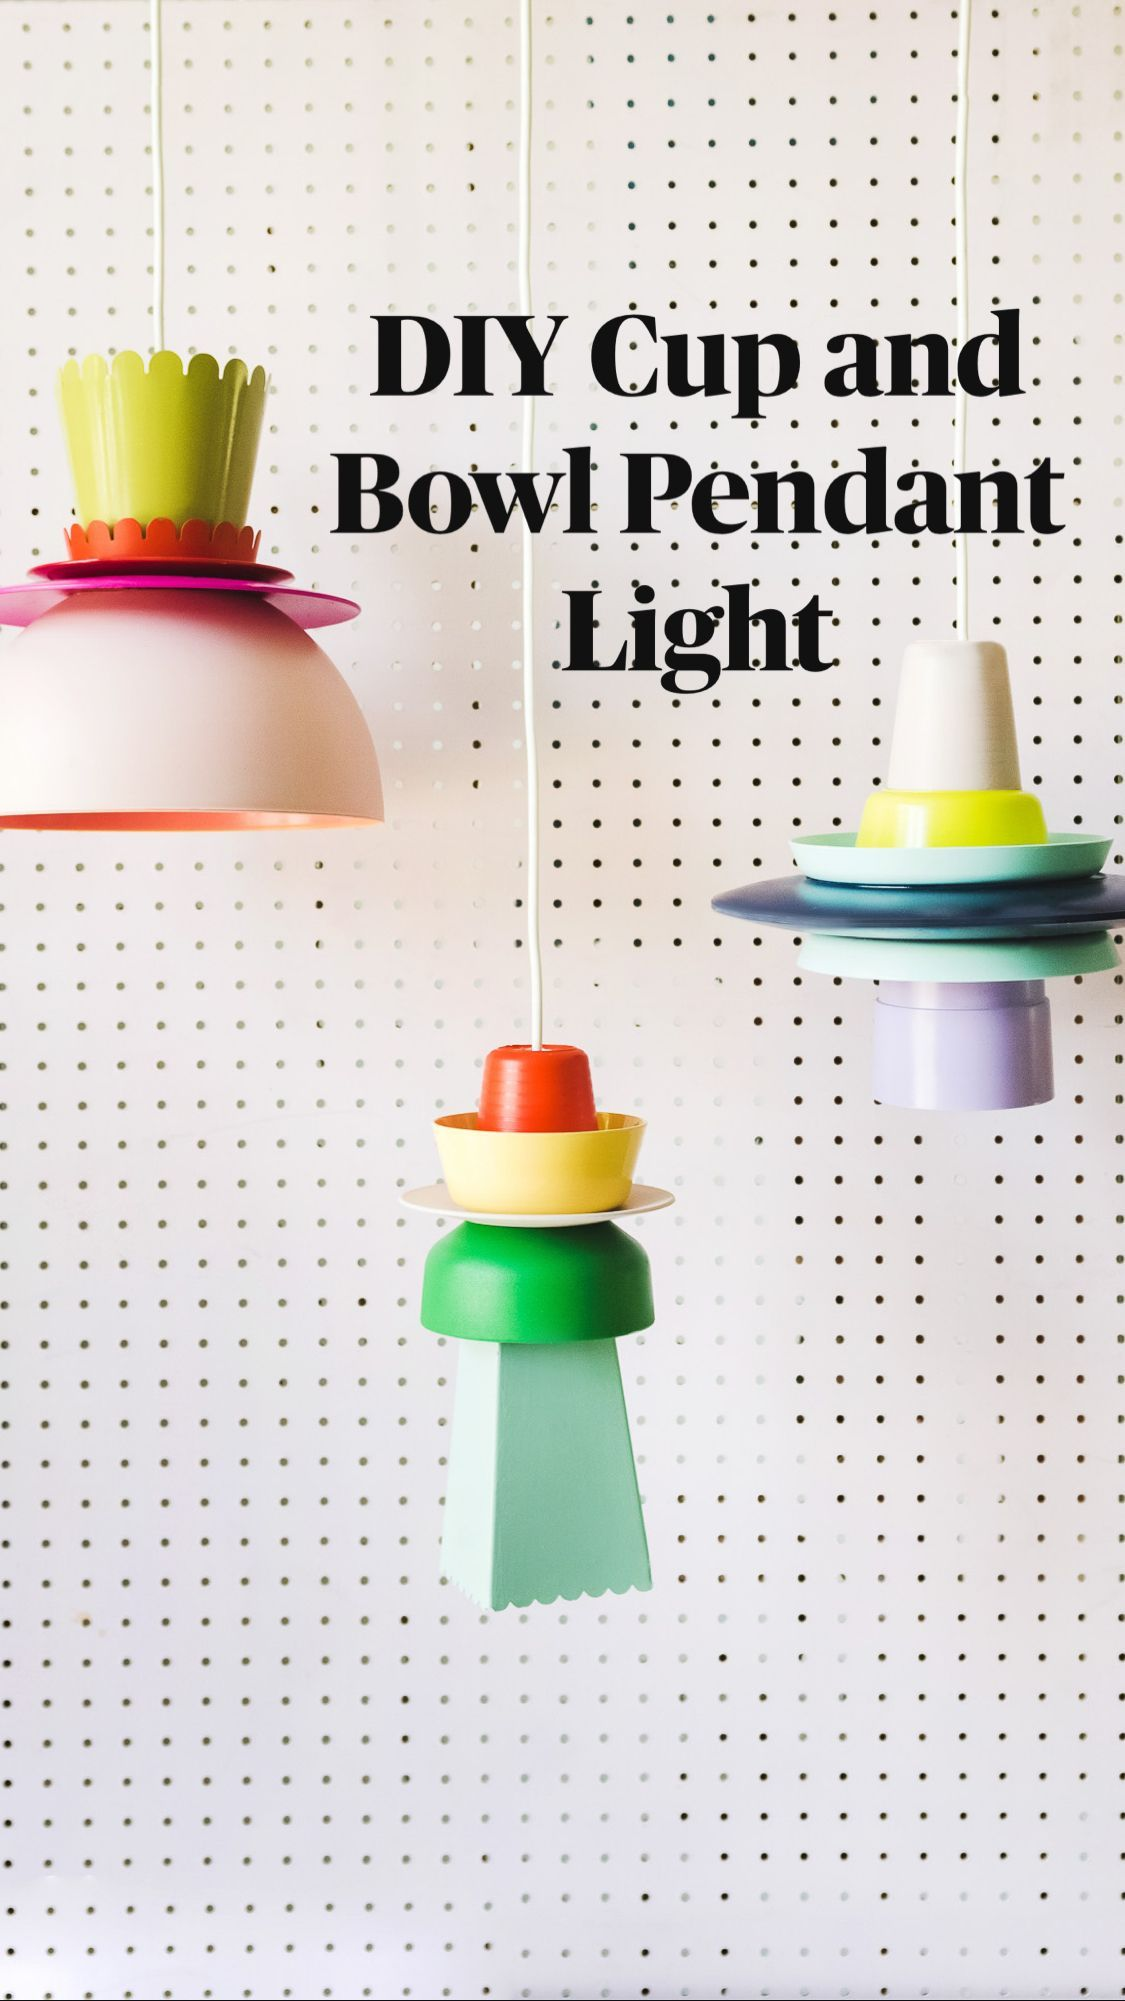 Cool DIY Cup and Bowl Pendant Light